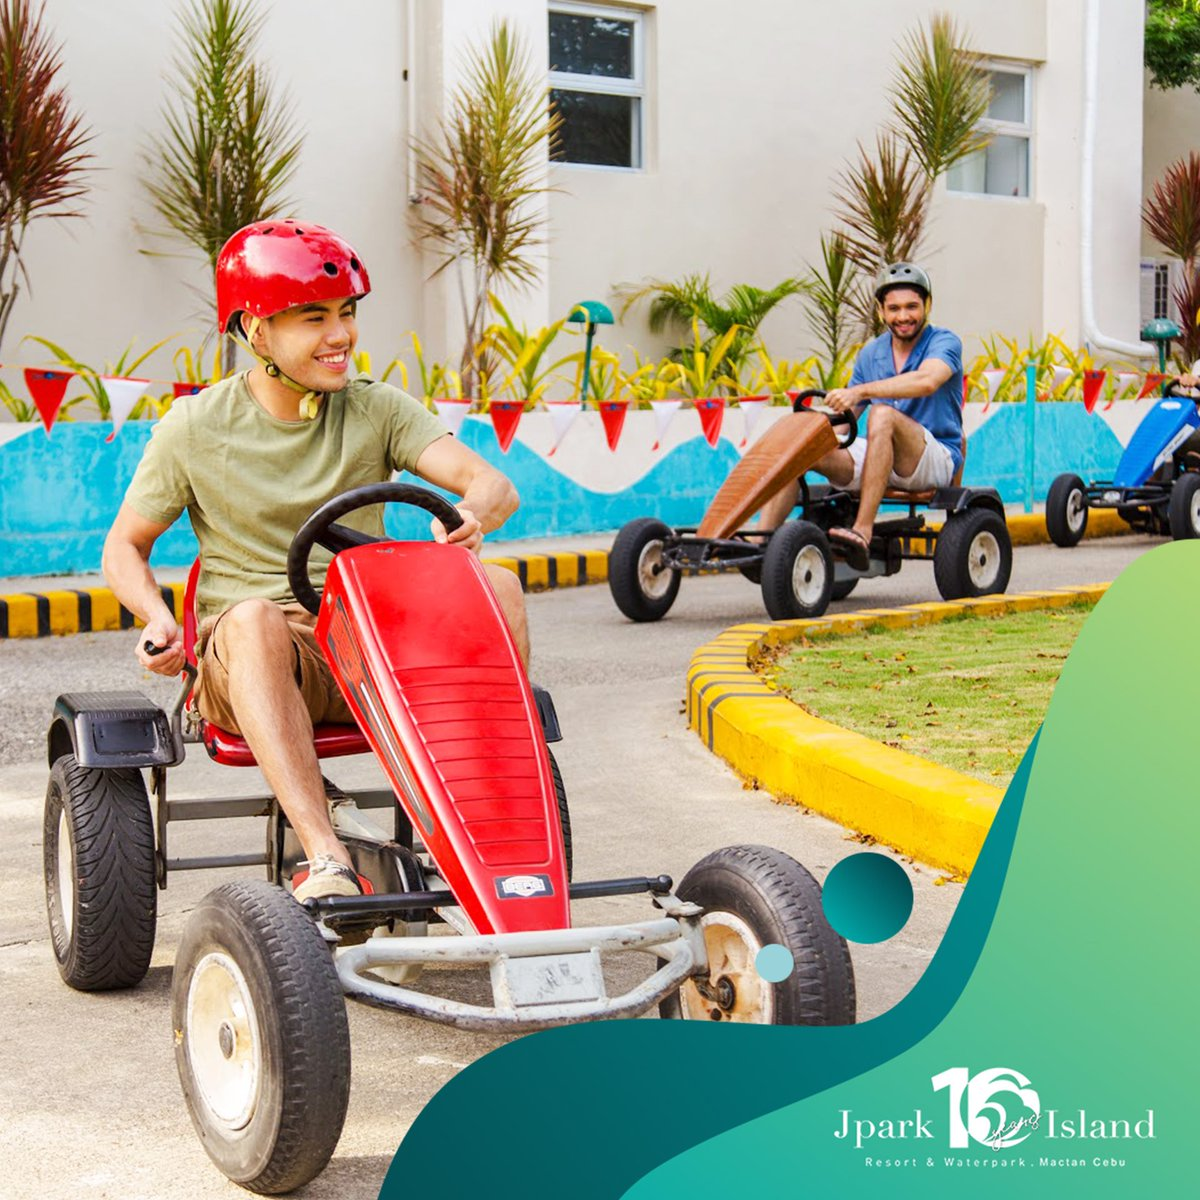 Everyone in the family will surely have a good time with all the activities we have in store for you.  Try them all! Visit https://t.co/HjA4UQSTAq to know more.   #MyJparkStory #WaterYouWaitingFor  #TenYearsOfJpark https://t.co/NnMCtA8Crs